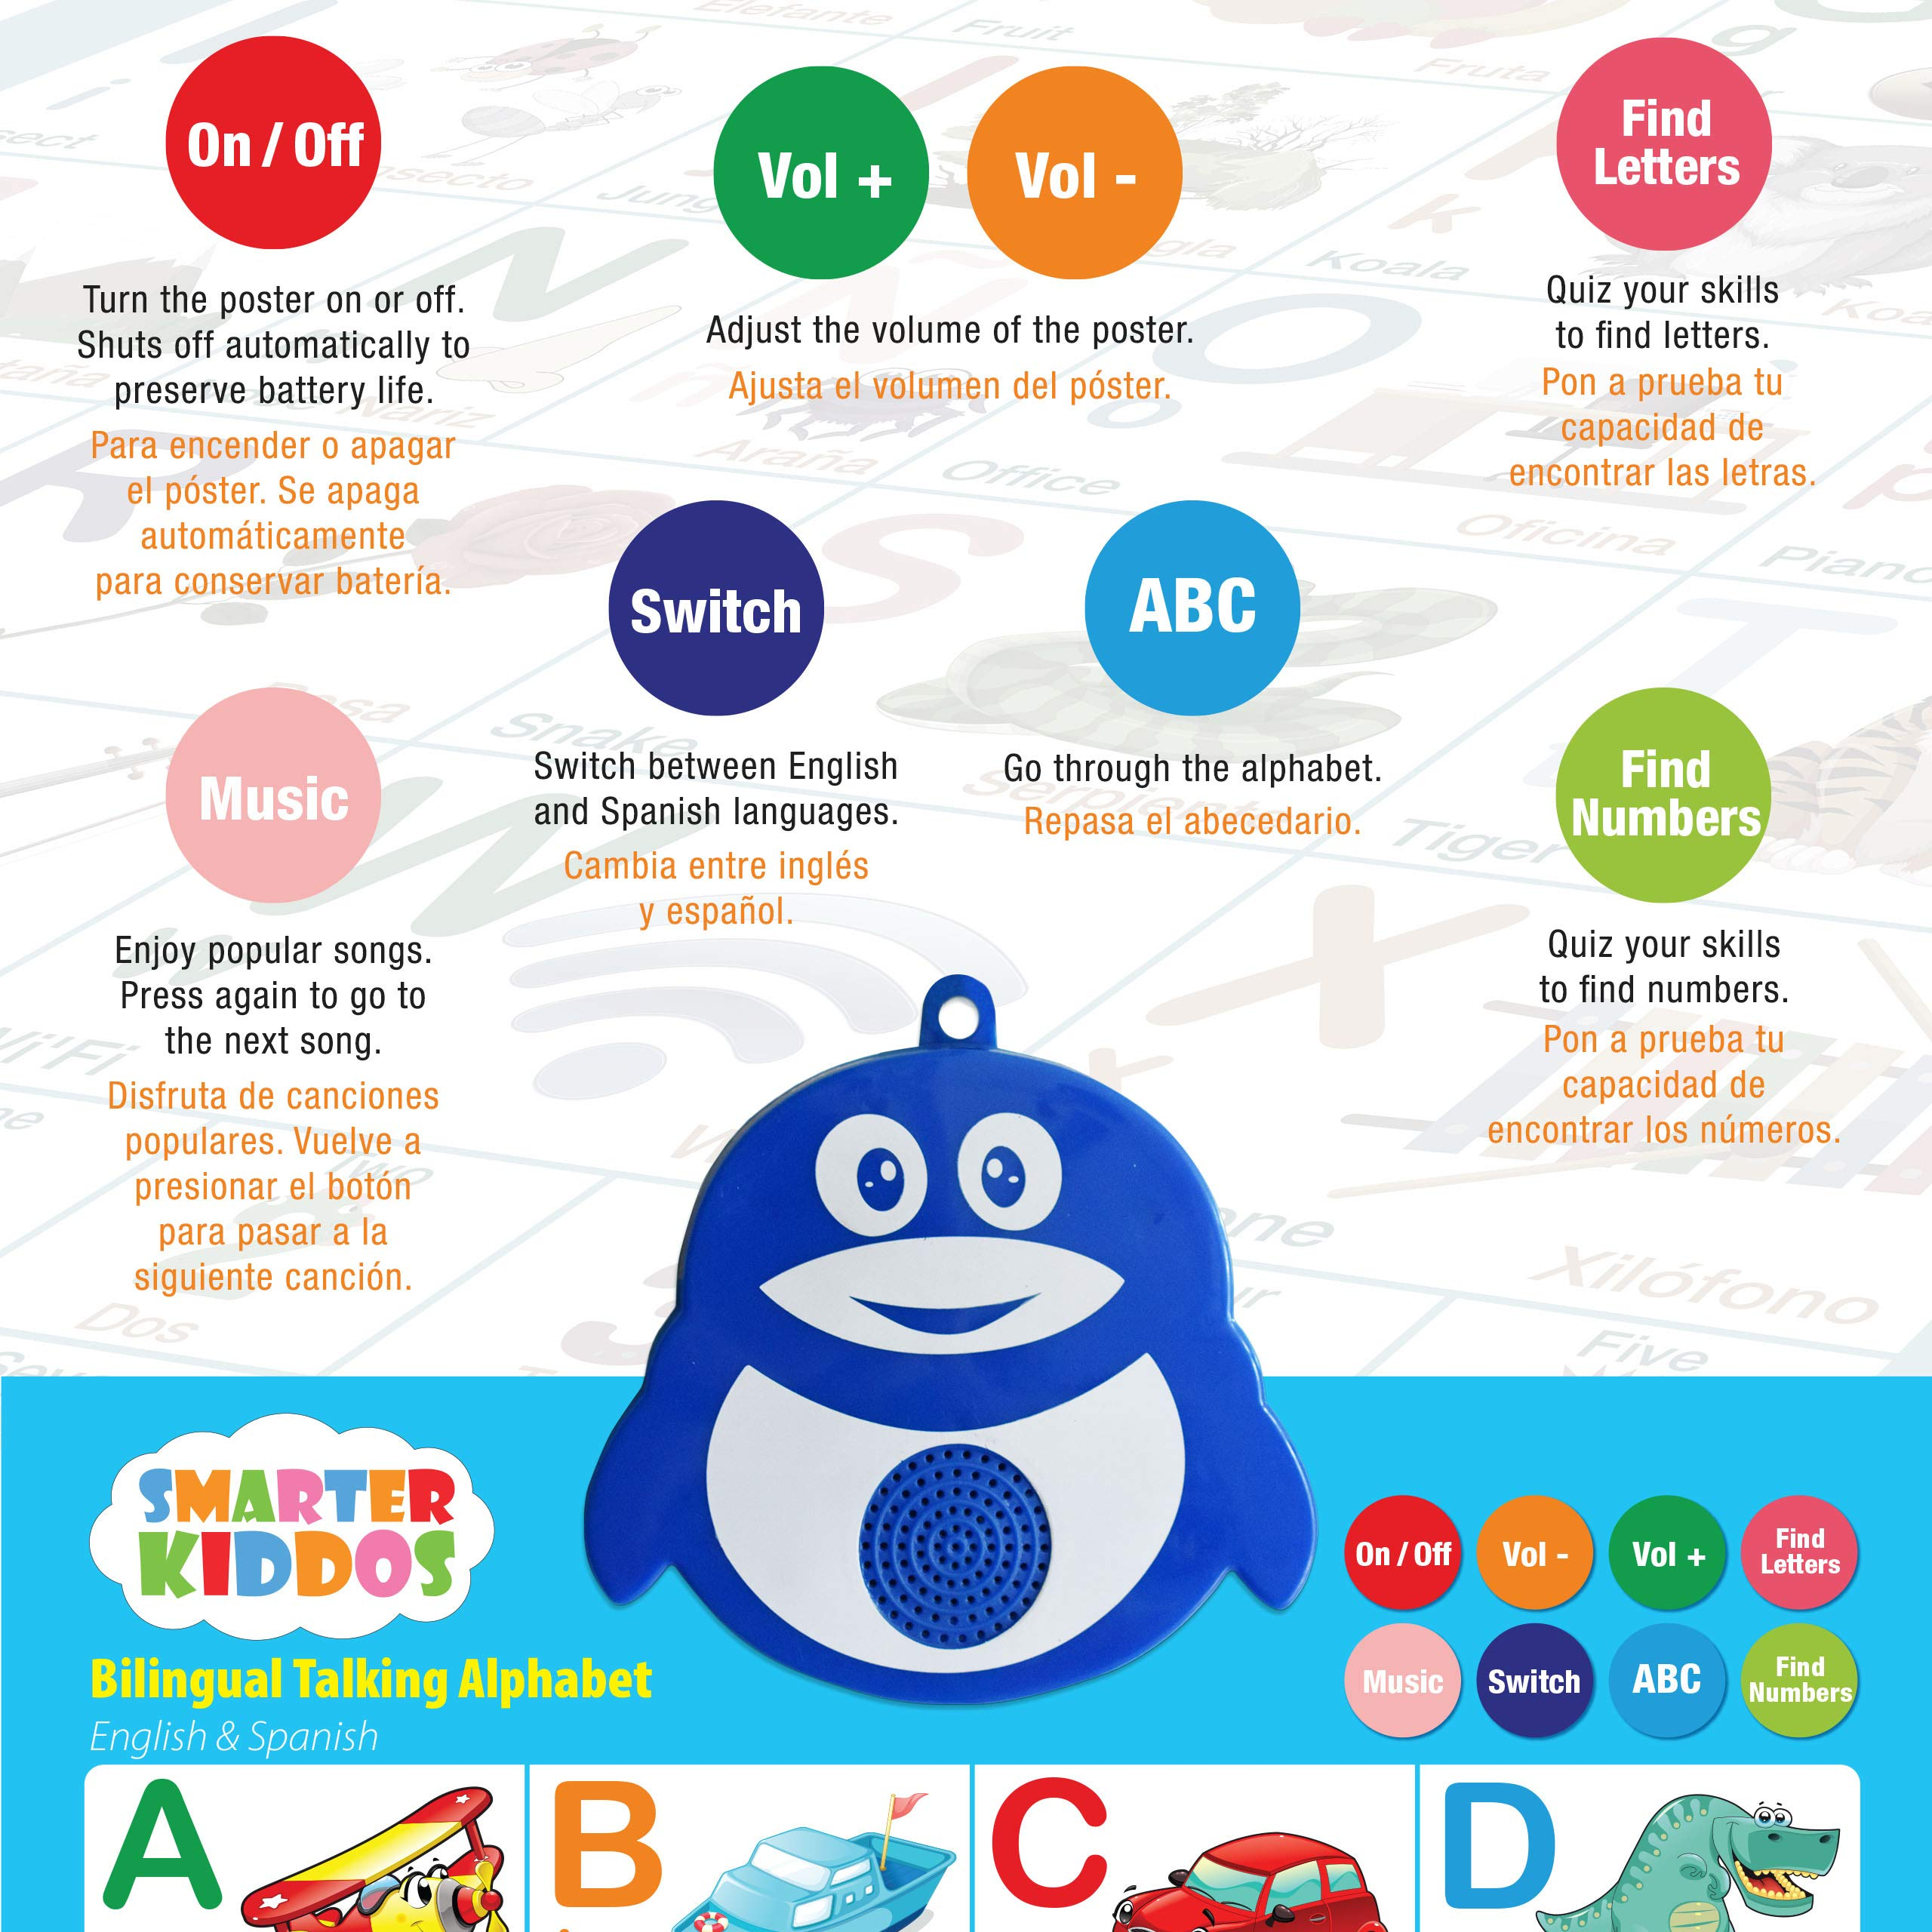 Bilingual Talking Alphabet Poster: Music + ABC + 123s English & Spanish. Best Toddler Educational Toys & Learning toys for 2-5 years olds. Perfect for Daycare, Preschool, Kindergarten for Boys & Girls by LVAP (Image #4)